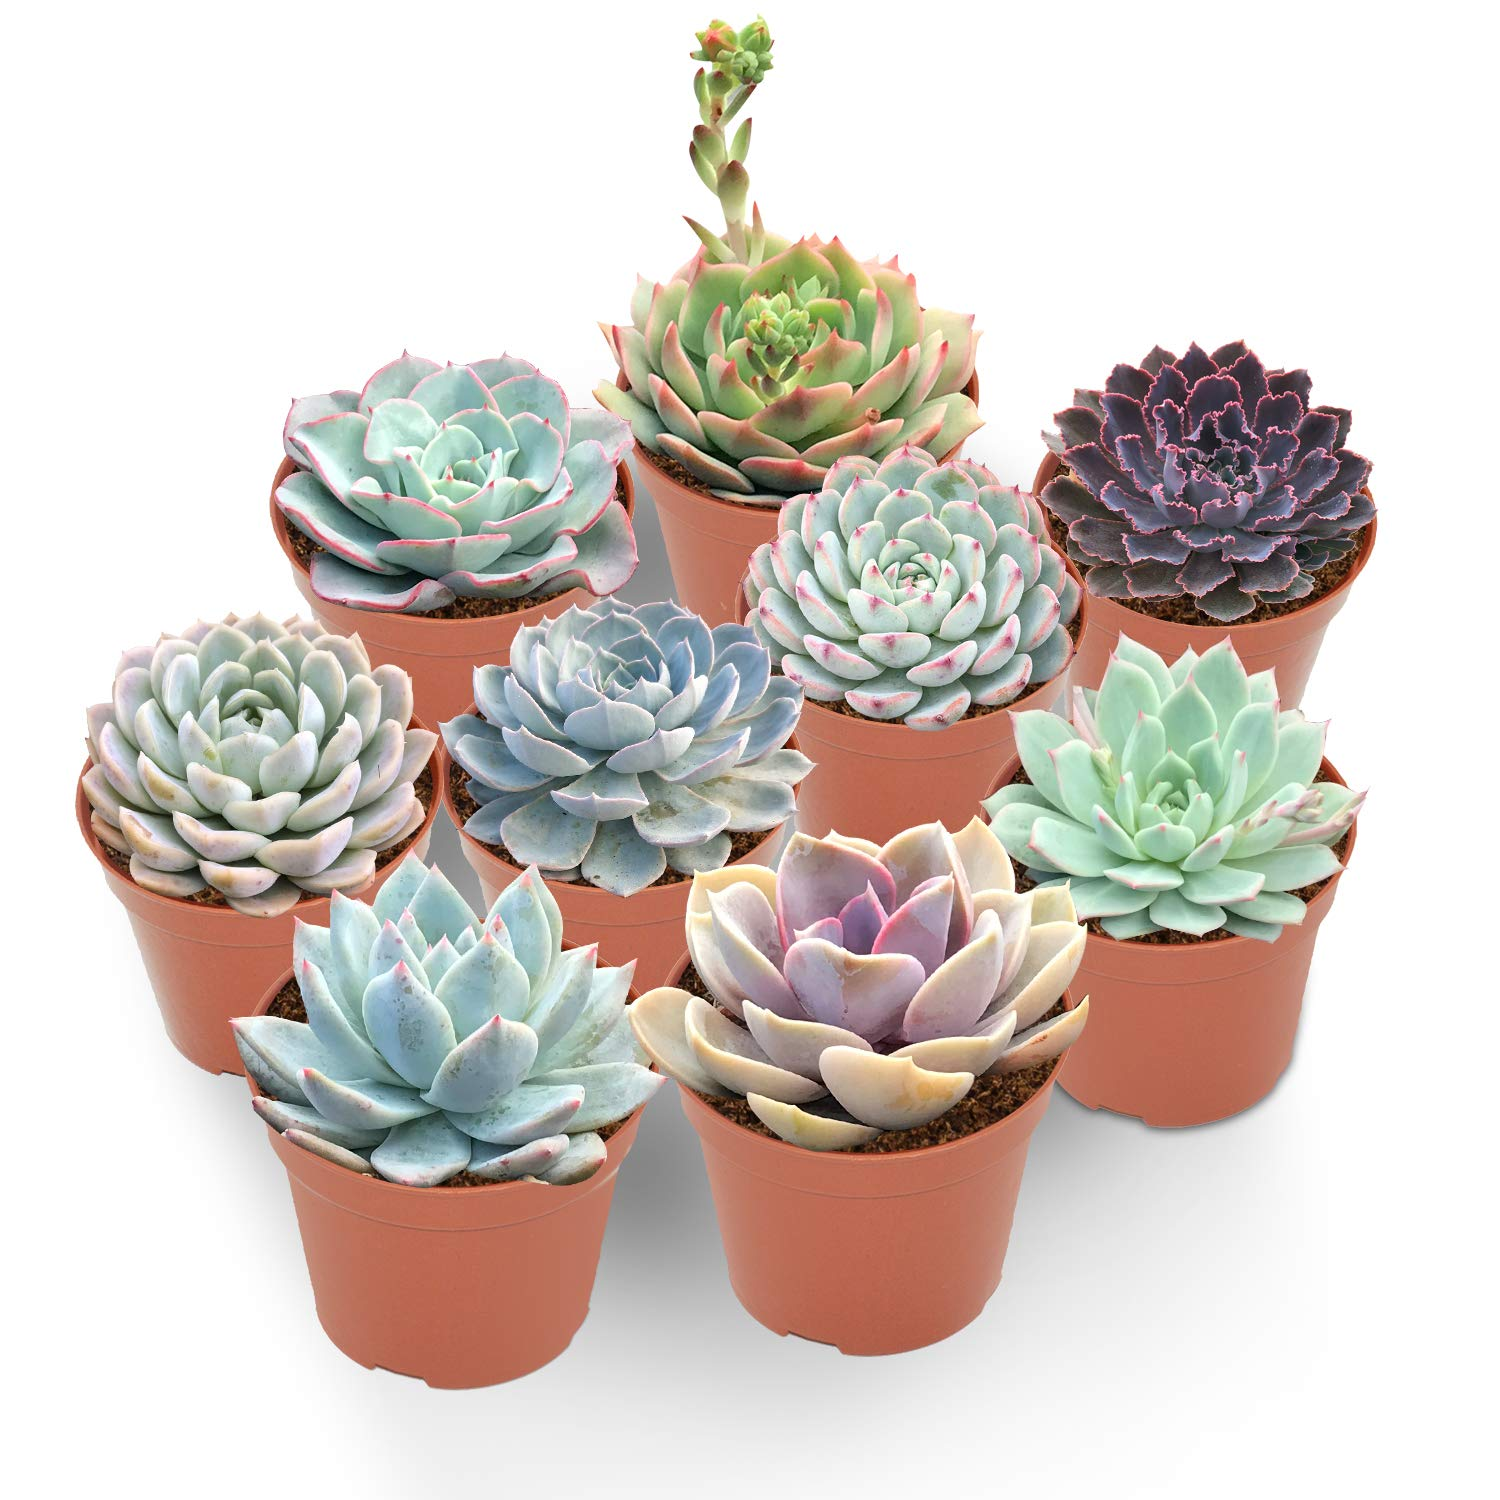 Premium Rosette Succulents, 9 Assorted Rooted Succulents in 4'' Planter Pots with Soil, Real Live Succulents Bonsai for Indoor Home Office Cactus Decor, Terrariums, Mini Garden